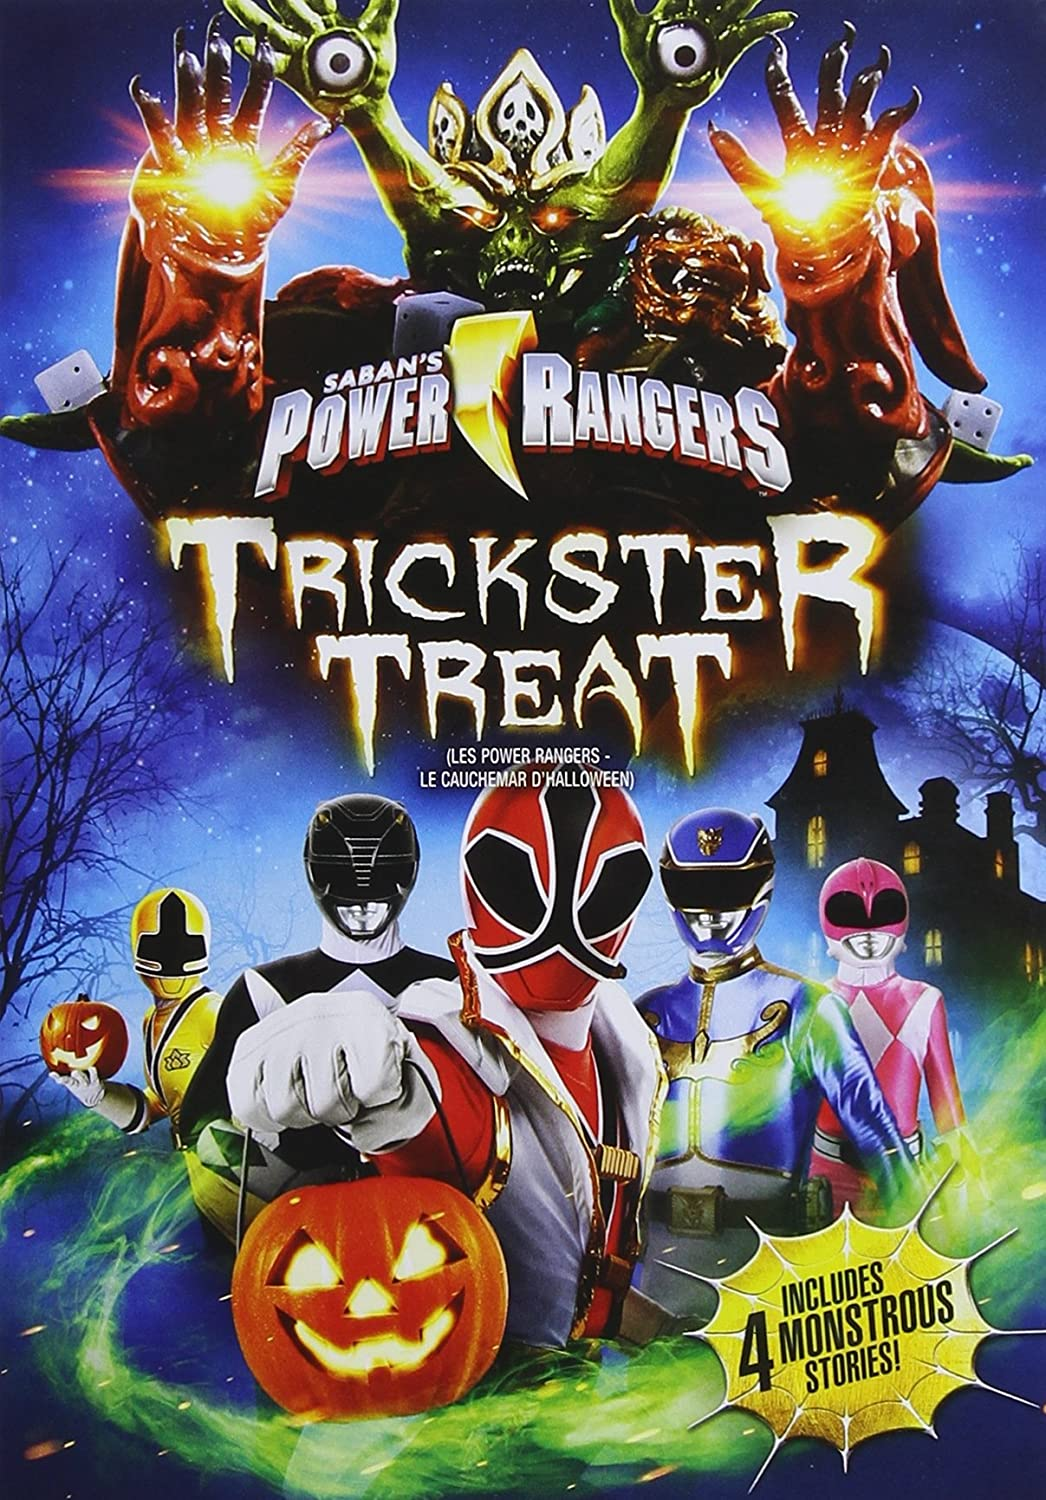 Amazon.com: Power Rangers - Trickster Treat: Alex Heartman ...